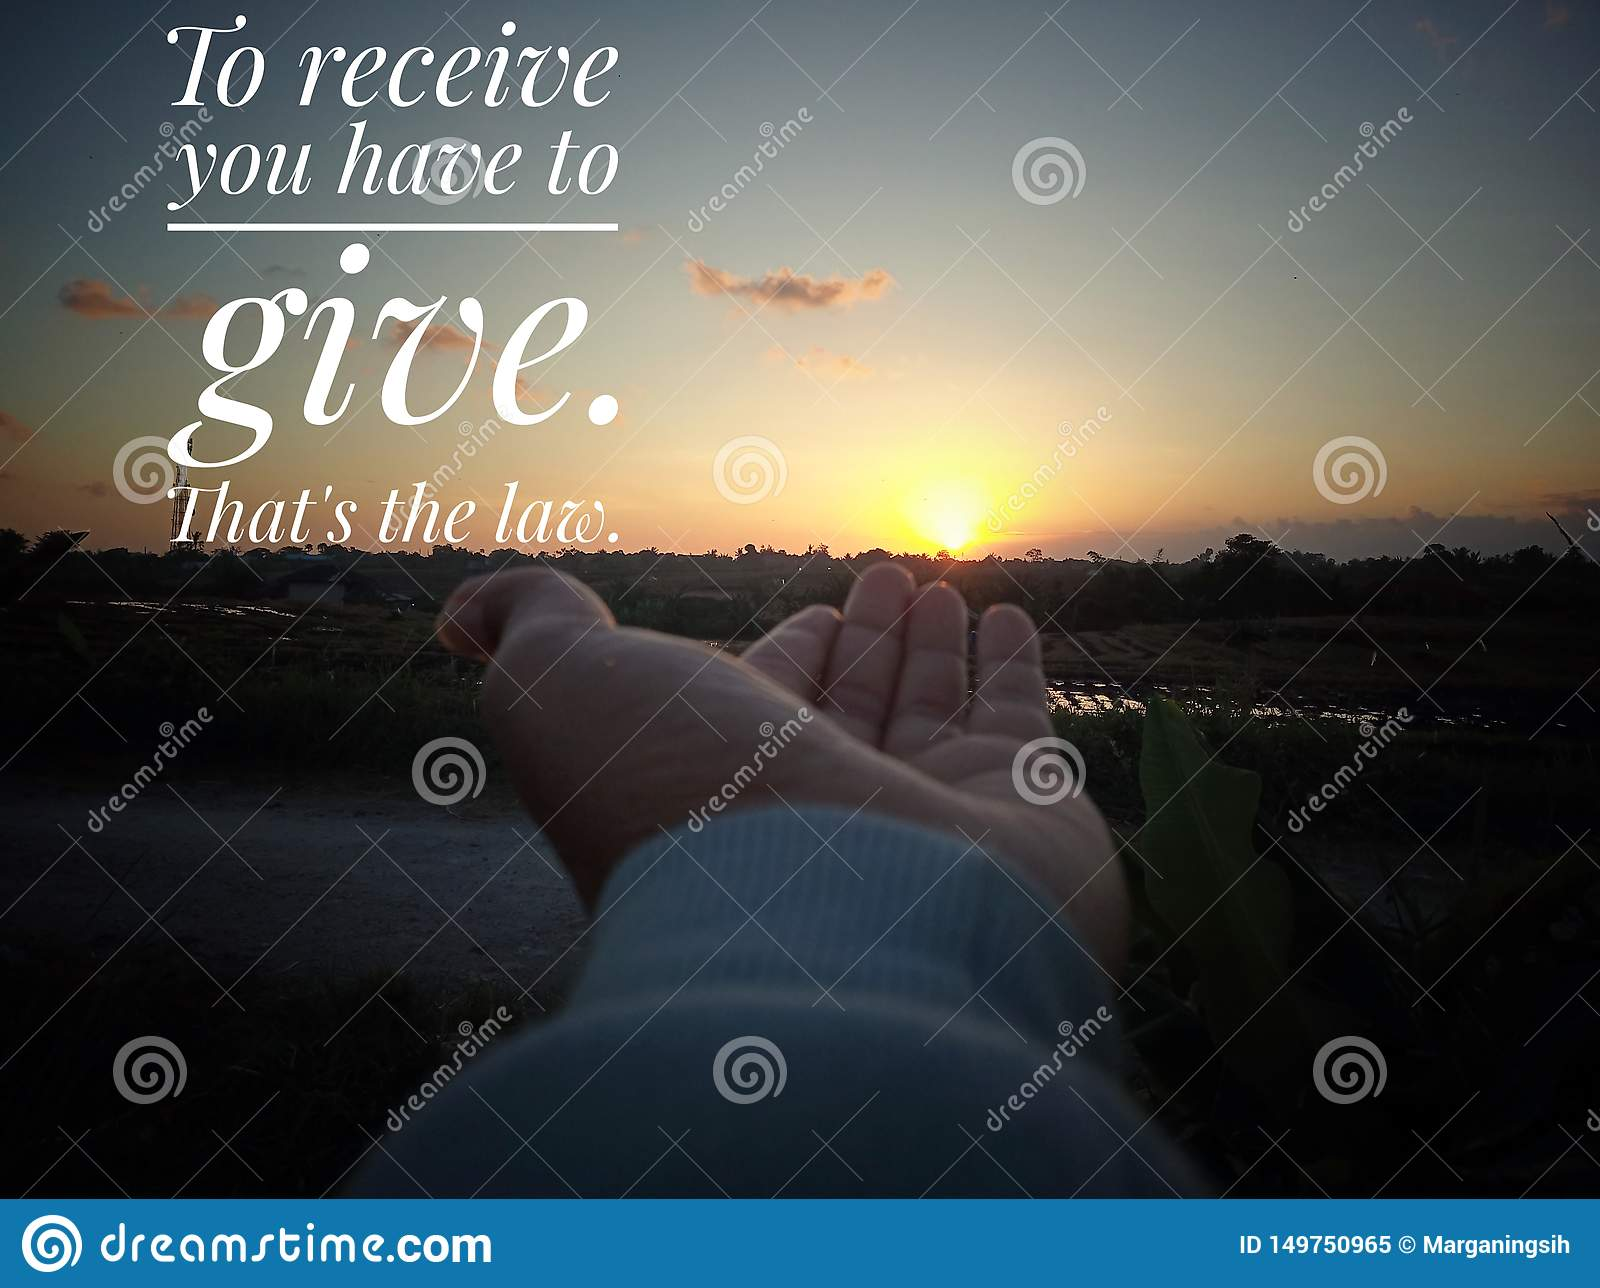 Inspirational motivational quote- to receive you have to give. That is the low. With sunset sunrise background, and a young woman